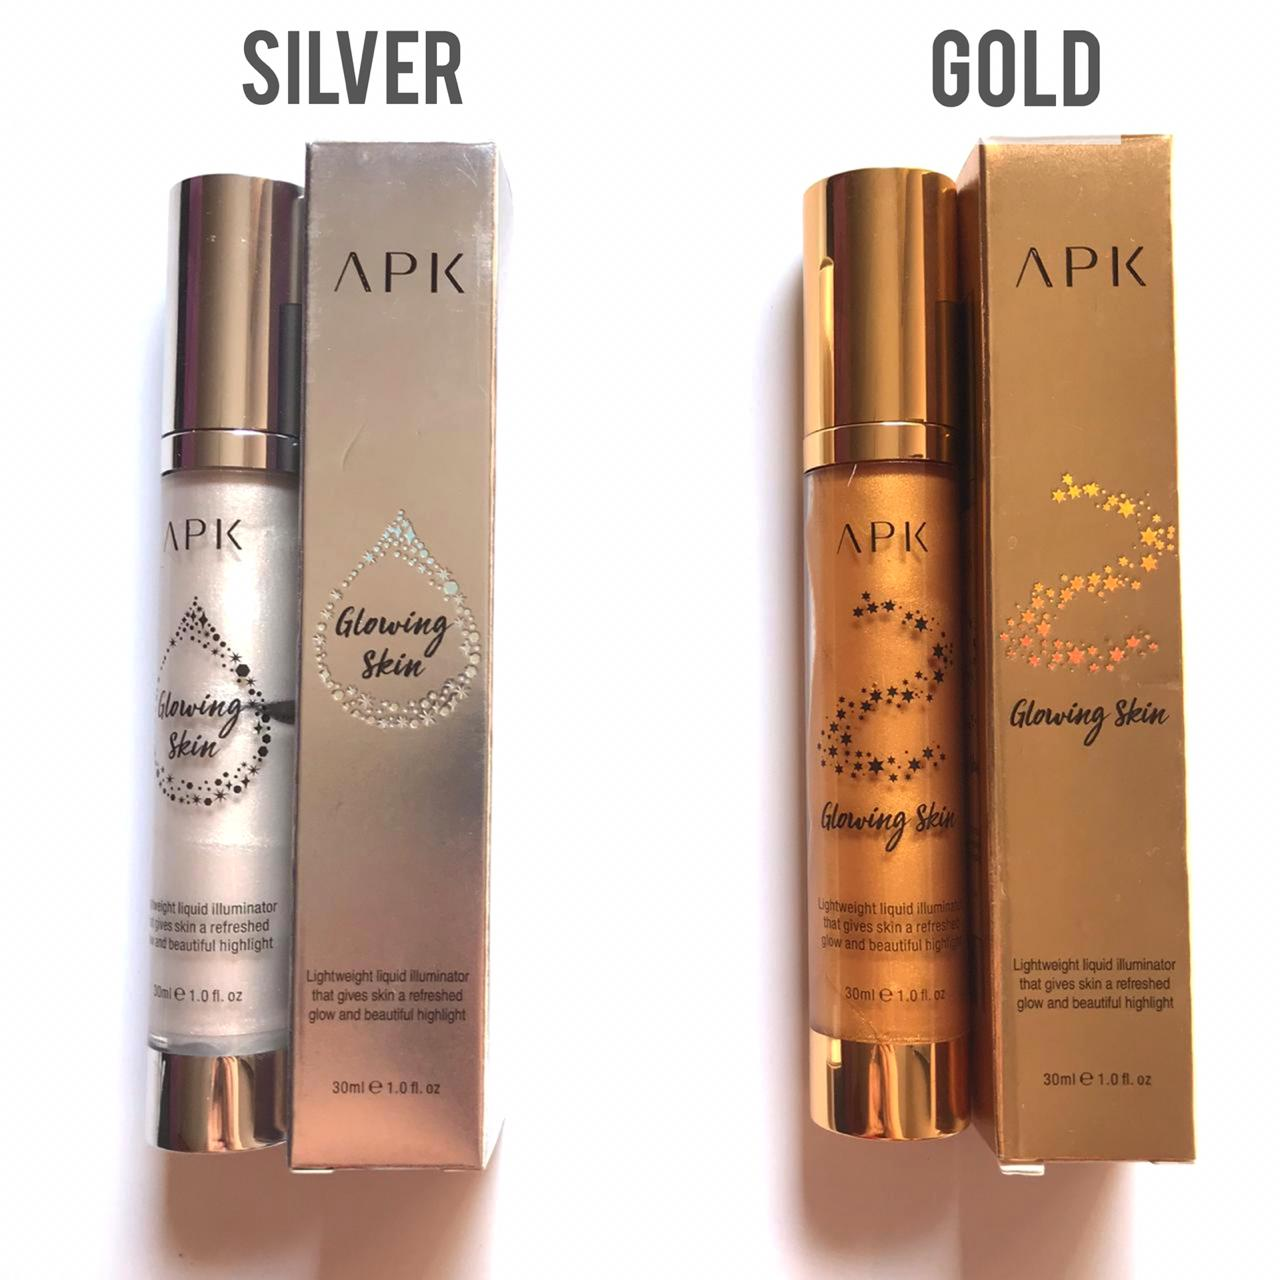 APK liquid illuminator